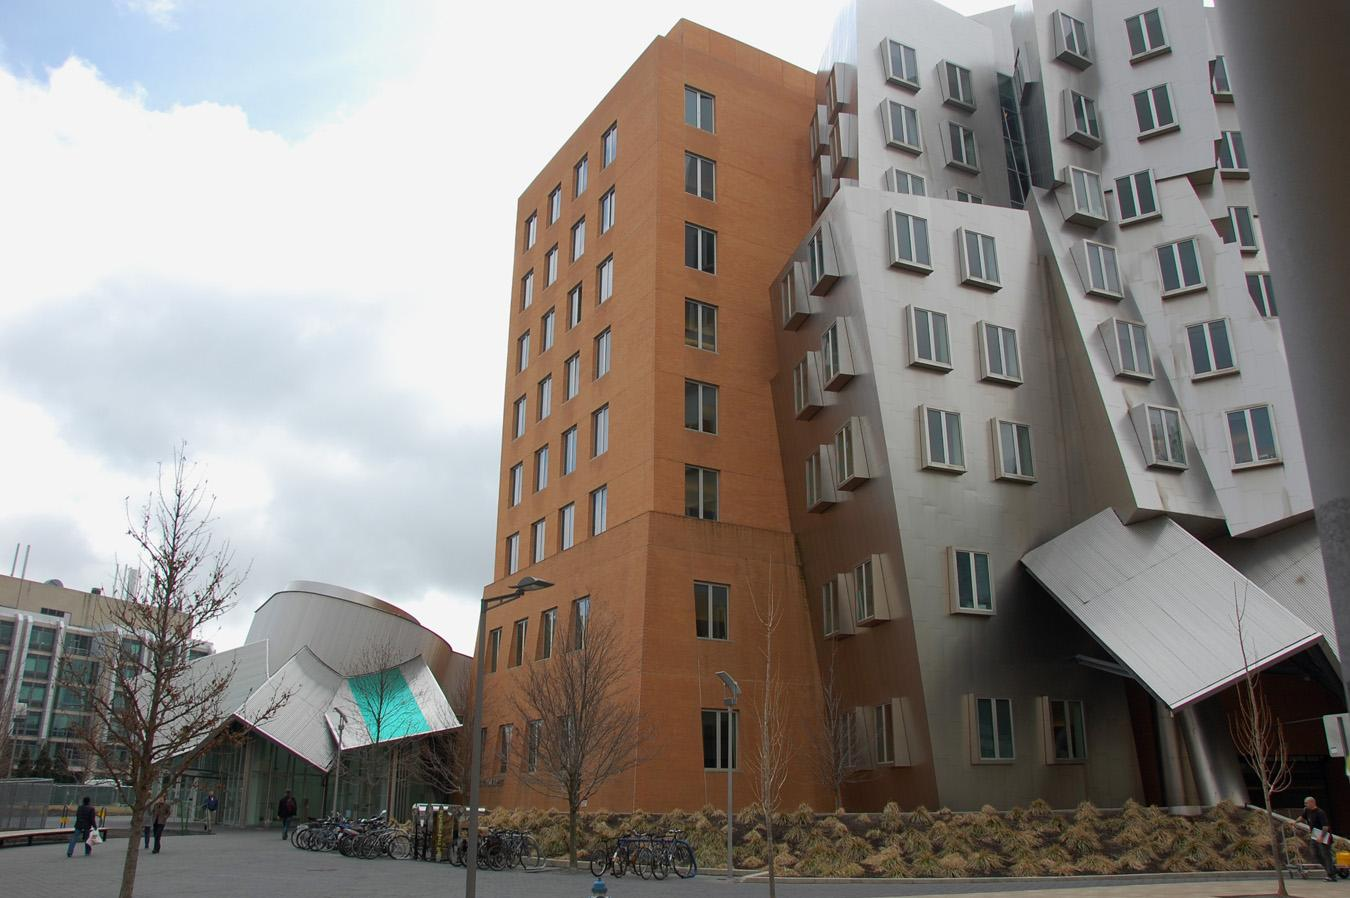 Frank gehry a f a s i a - Gehry architekt ...